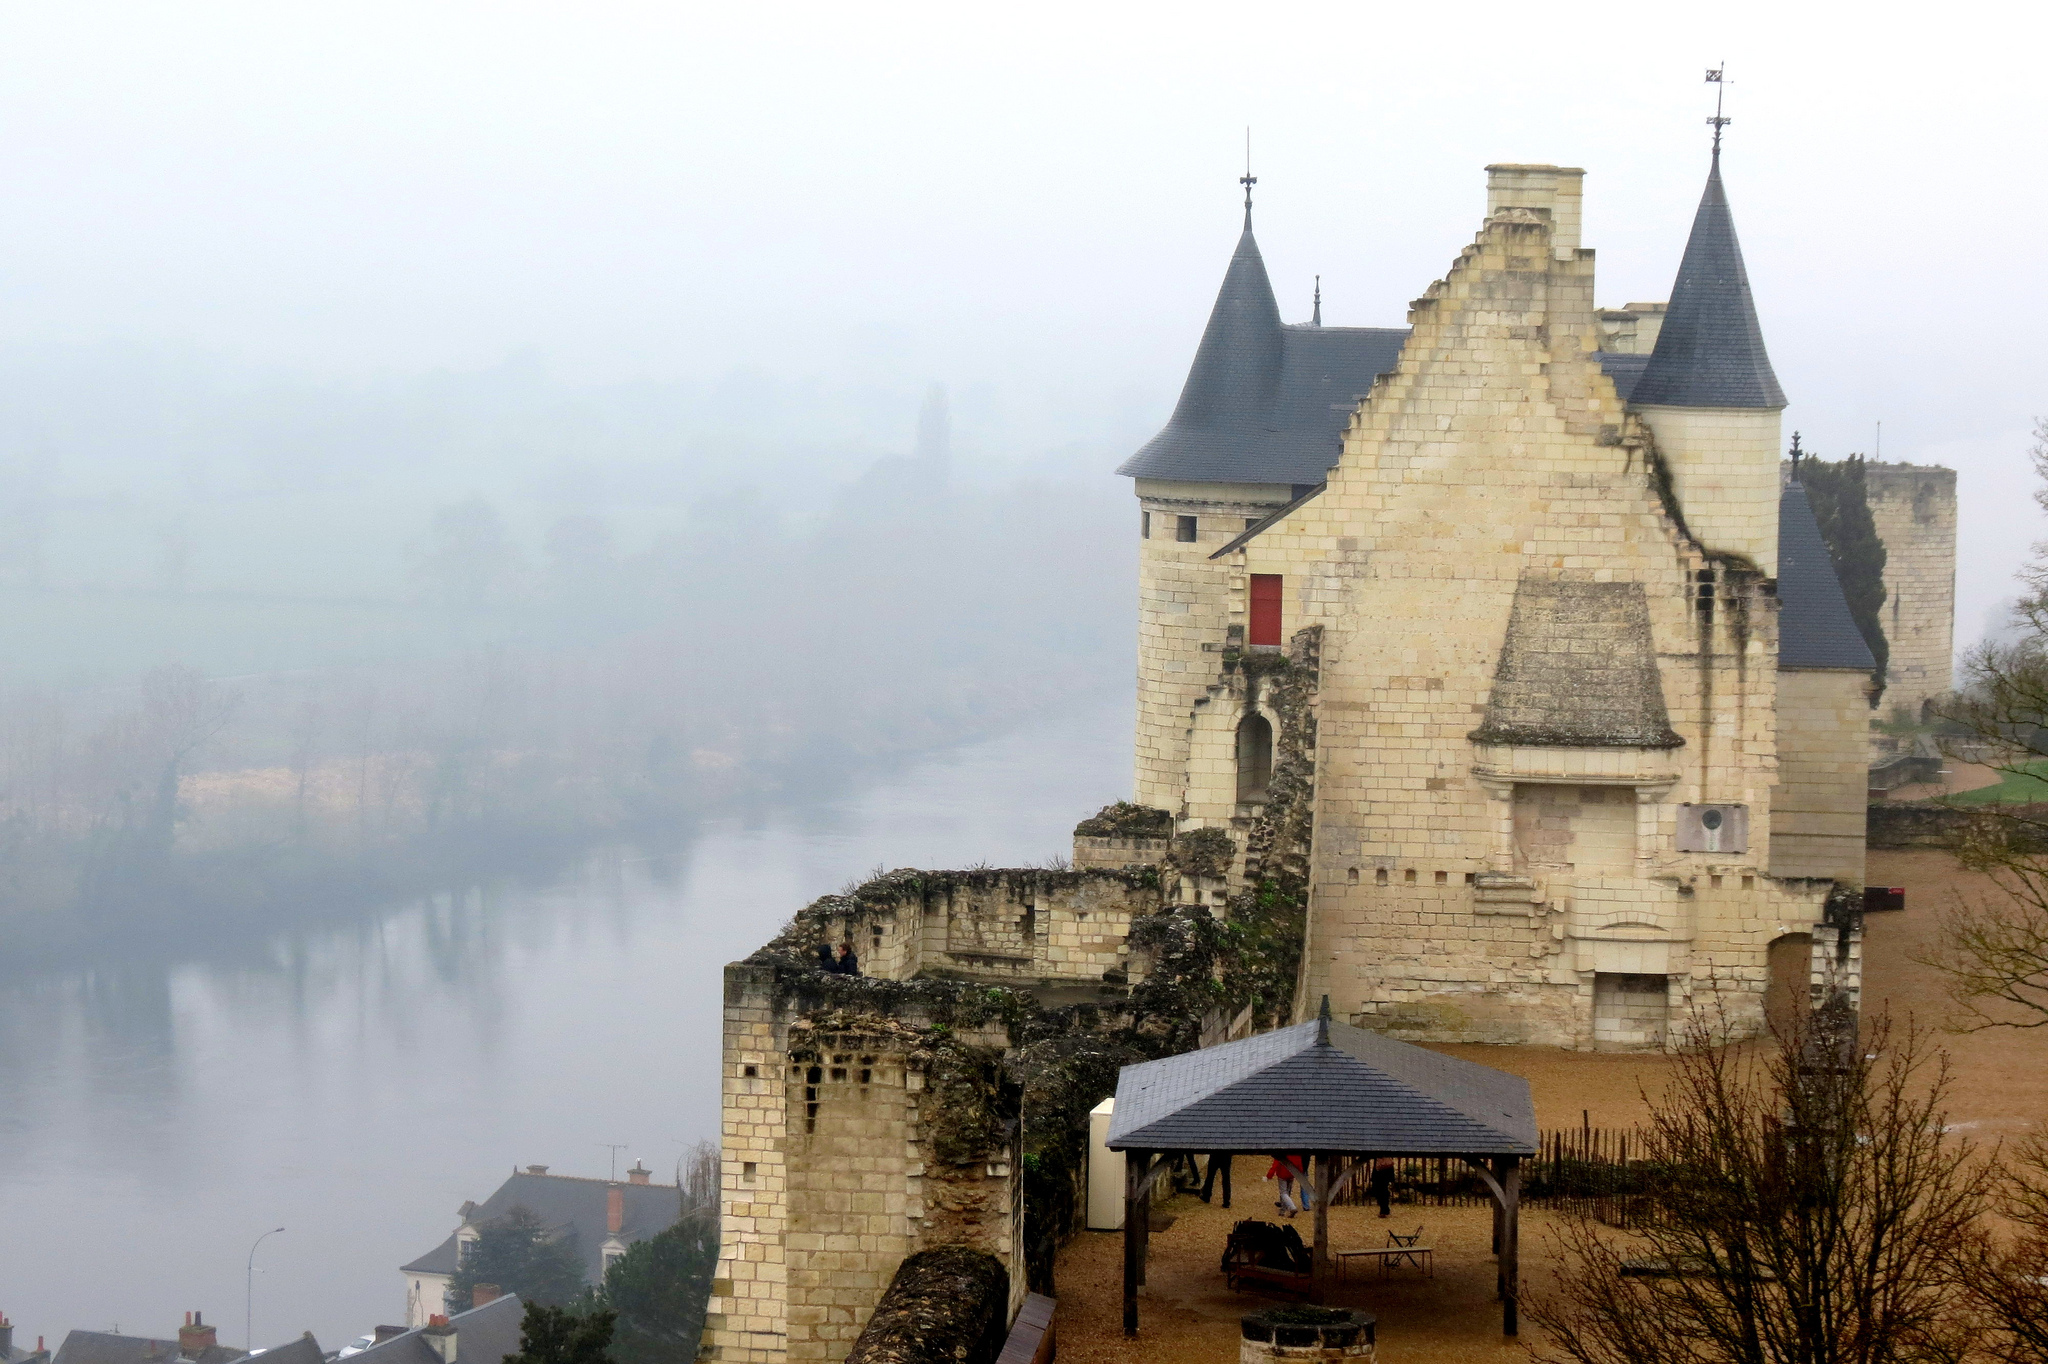 Chinon castle by Flickr user Xorge. Some rights reserved. Creative Commons License.